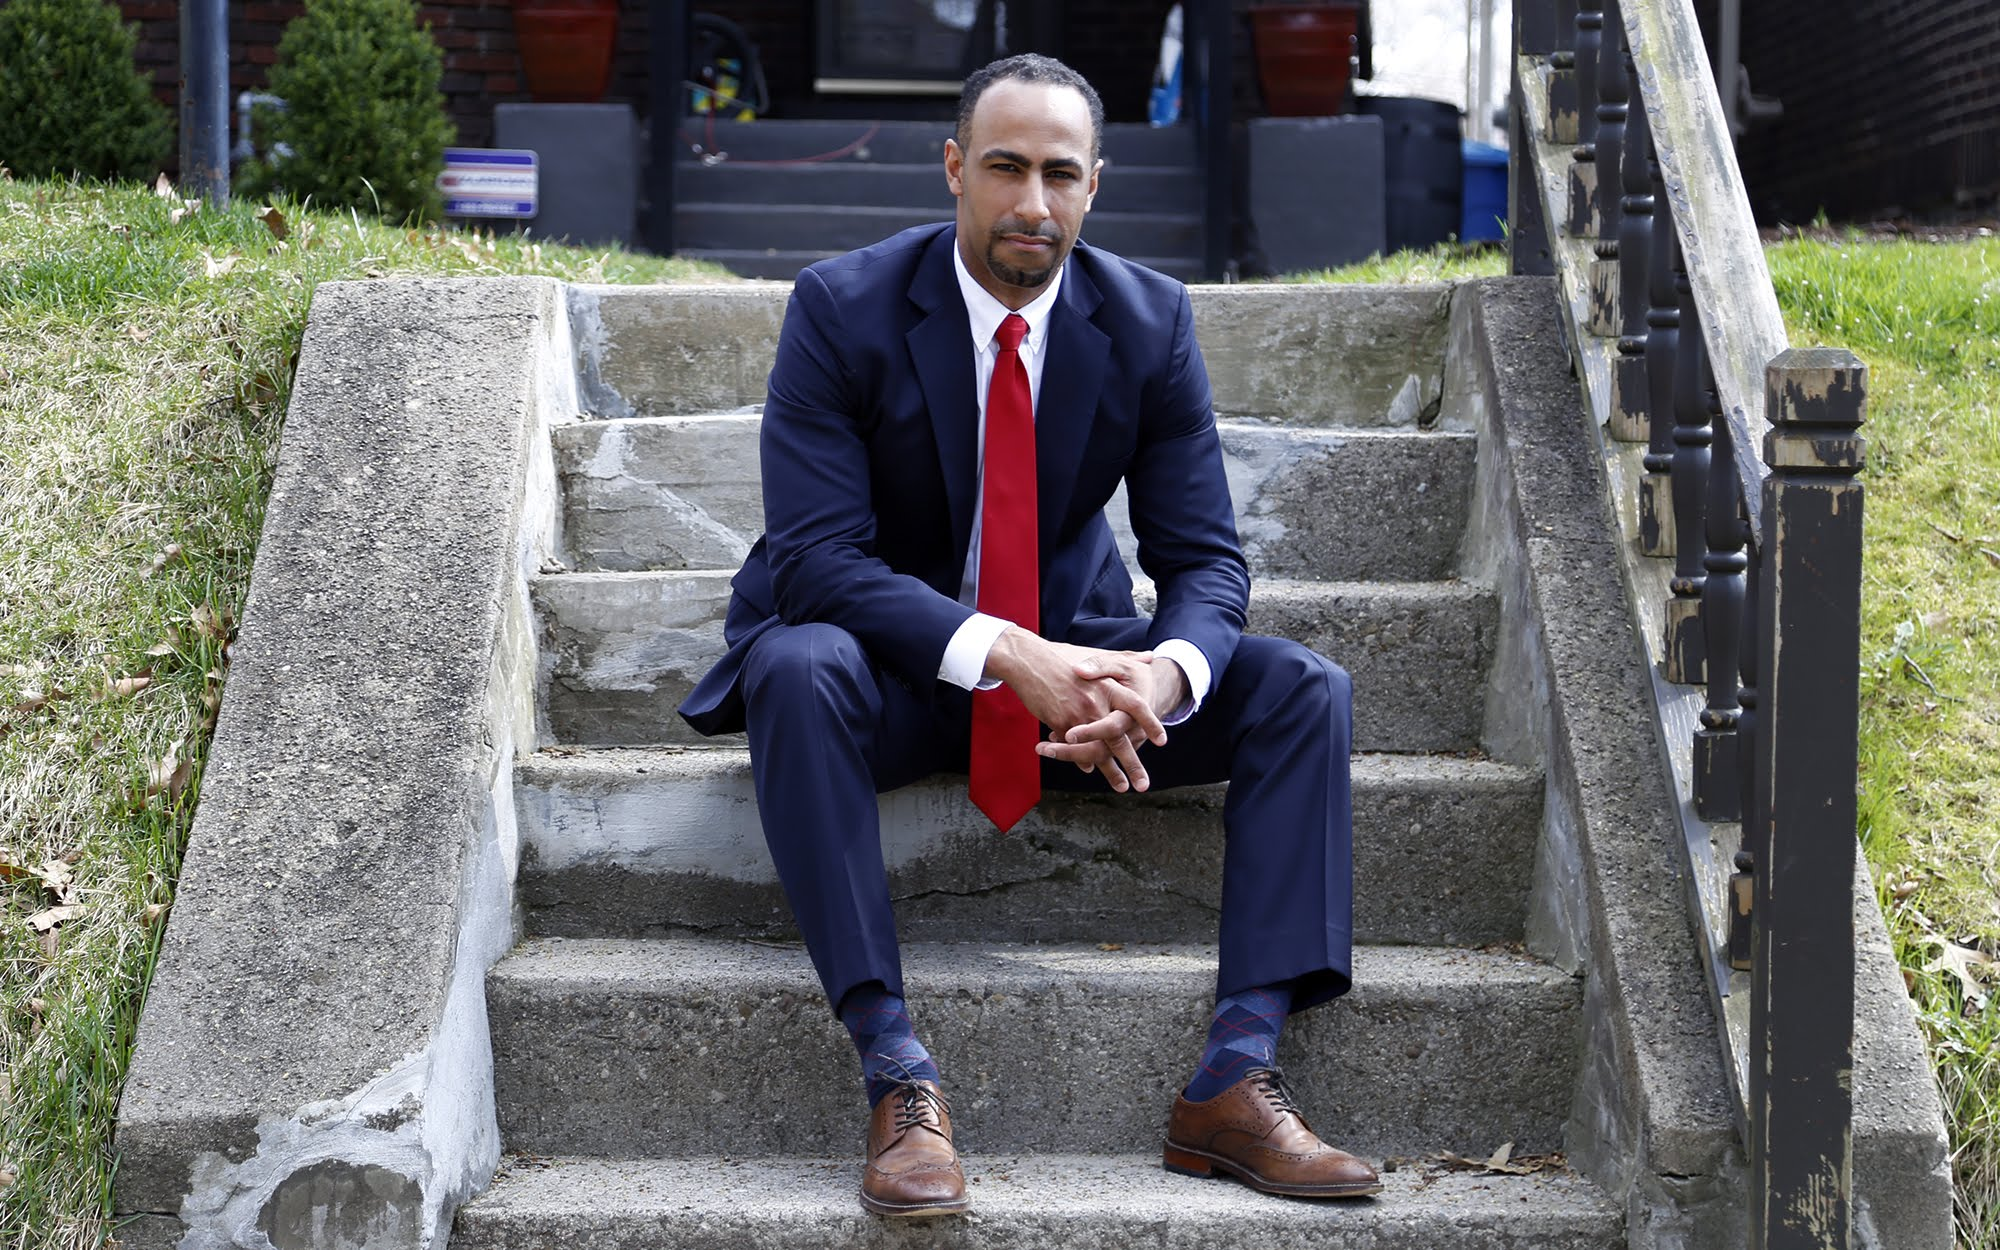 Gerald S. Dickinson, a 32-year-old law professor at the University of Pittsburgh, announced on Wednesday his intention to to challenge U.S. Rep. Mike Doyle in the Democratic primary in Pennsylvania's 18th congressional district. (Photo by Ryan Loew/PublicSource)